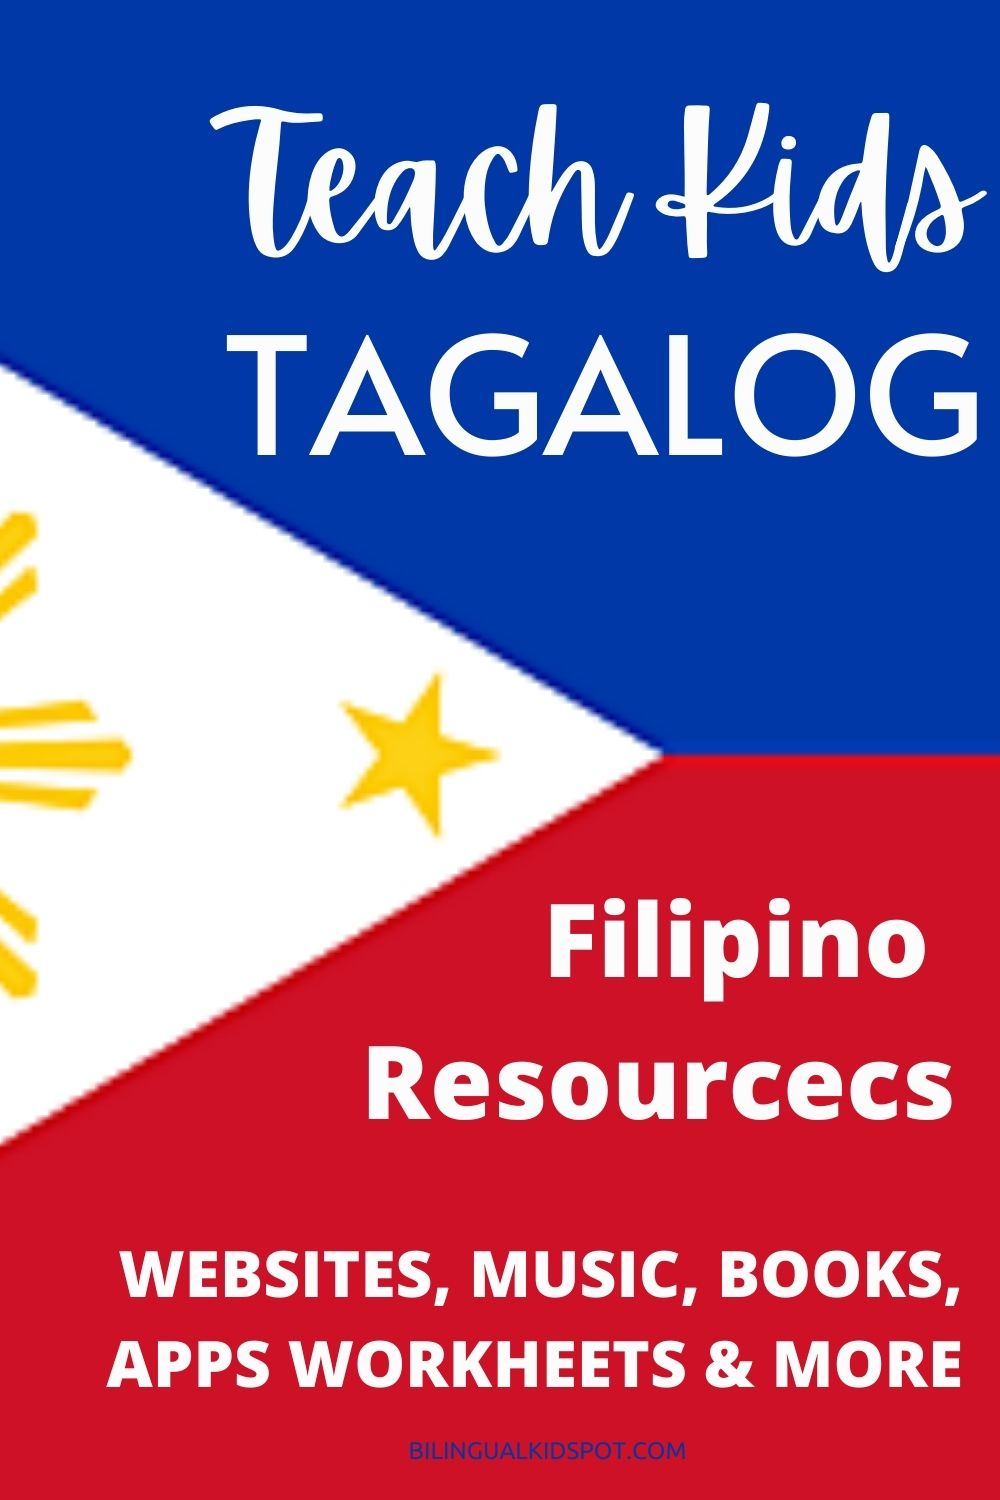 Resources to Teach Kids Tagalog - Filipino for Kids